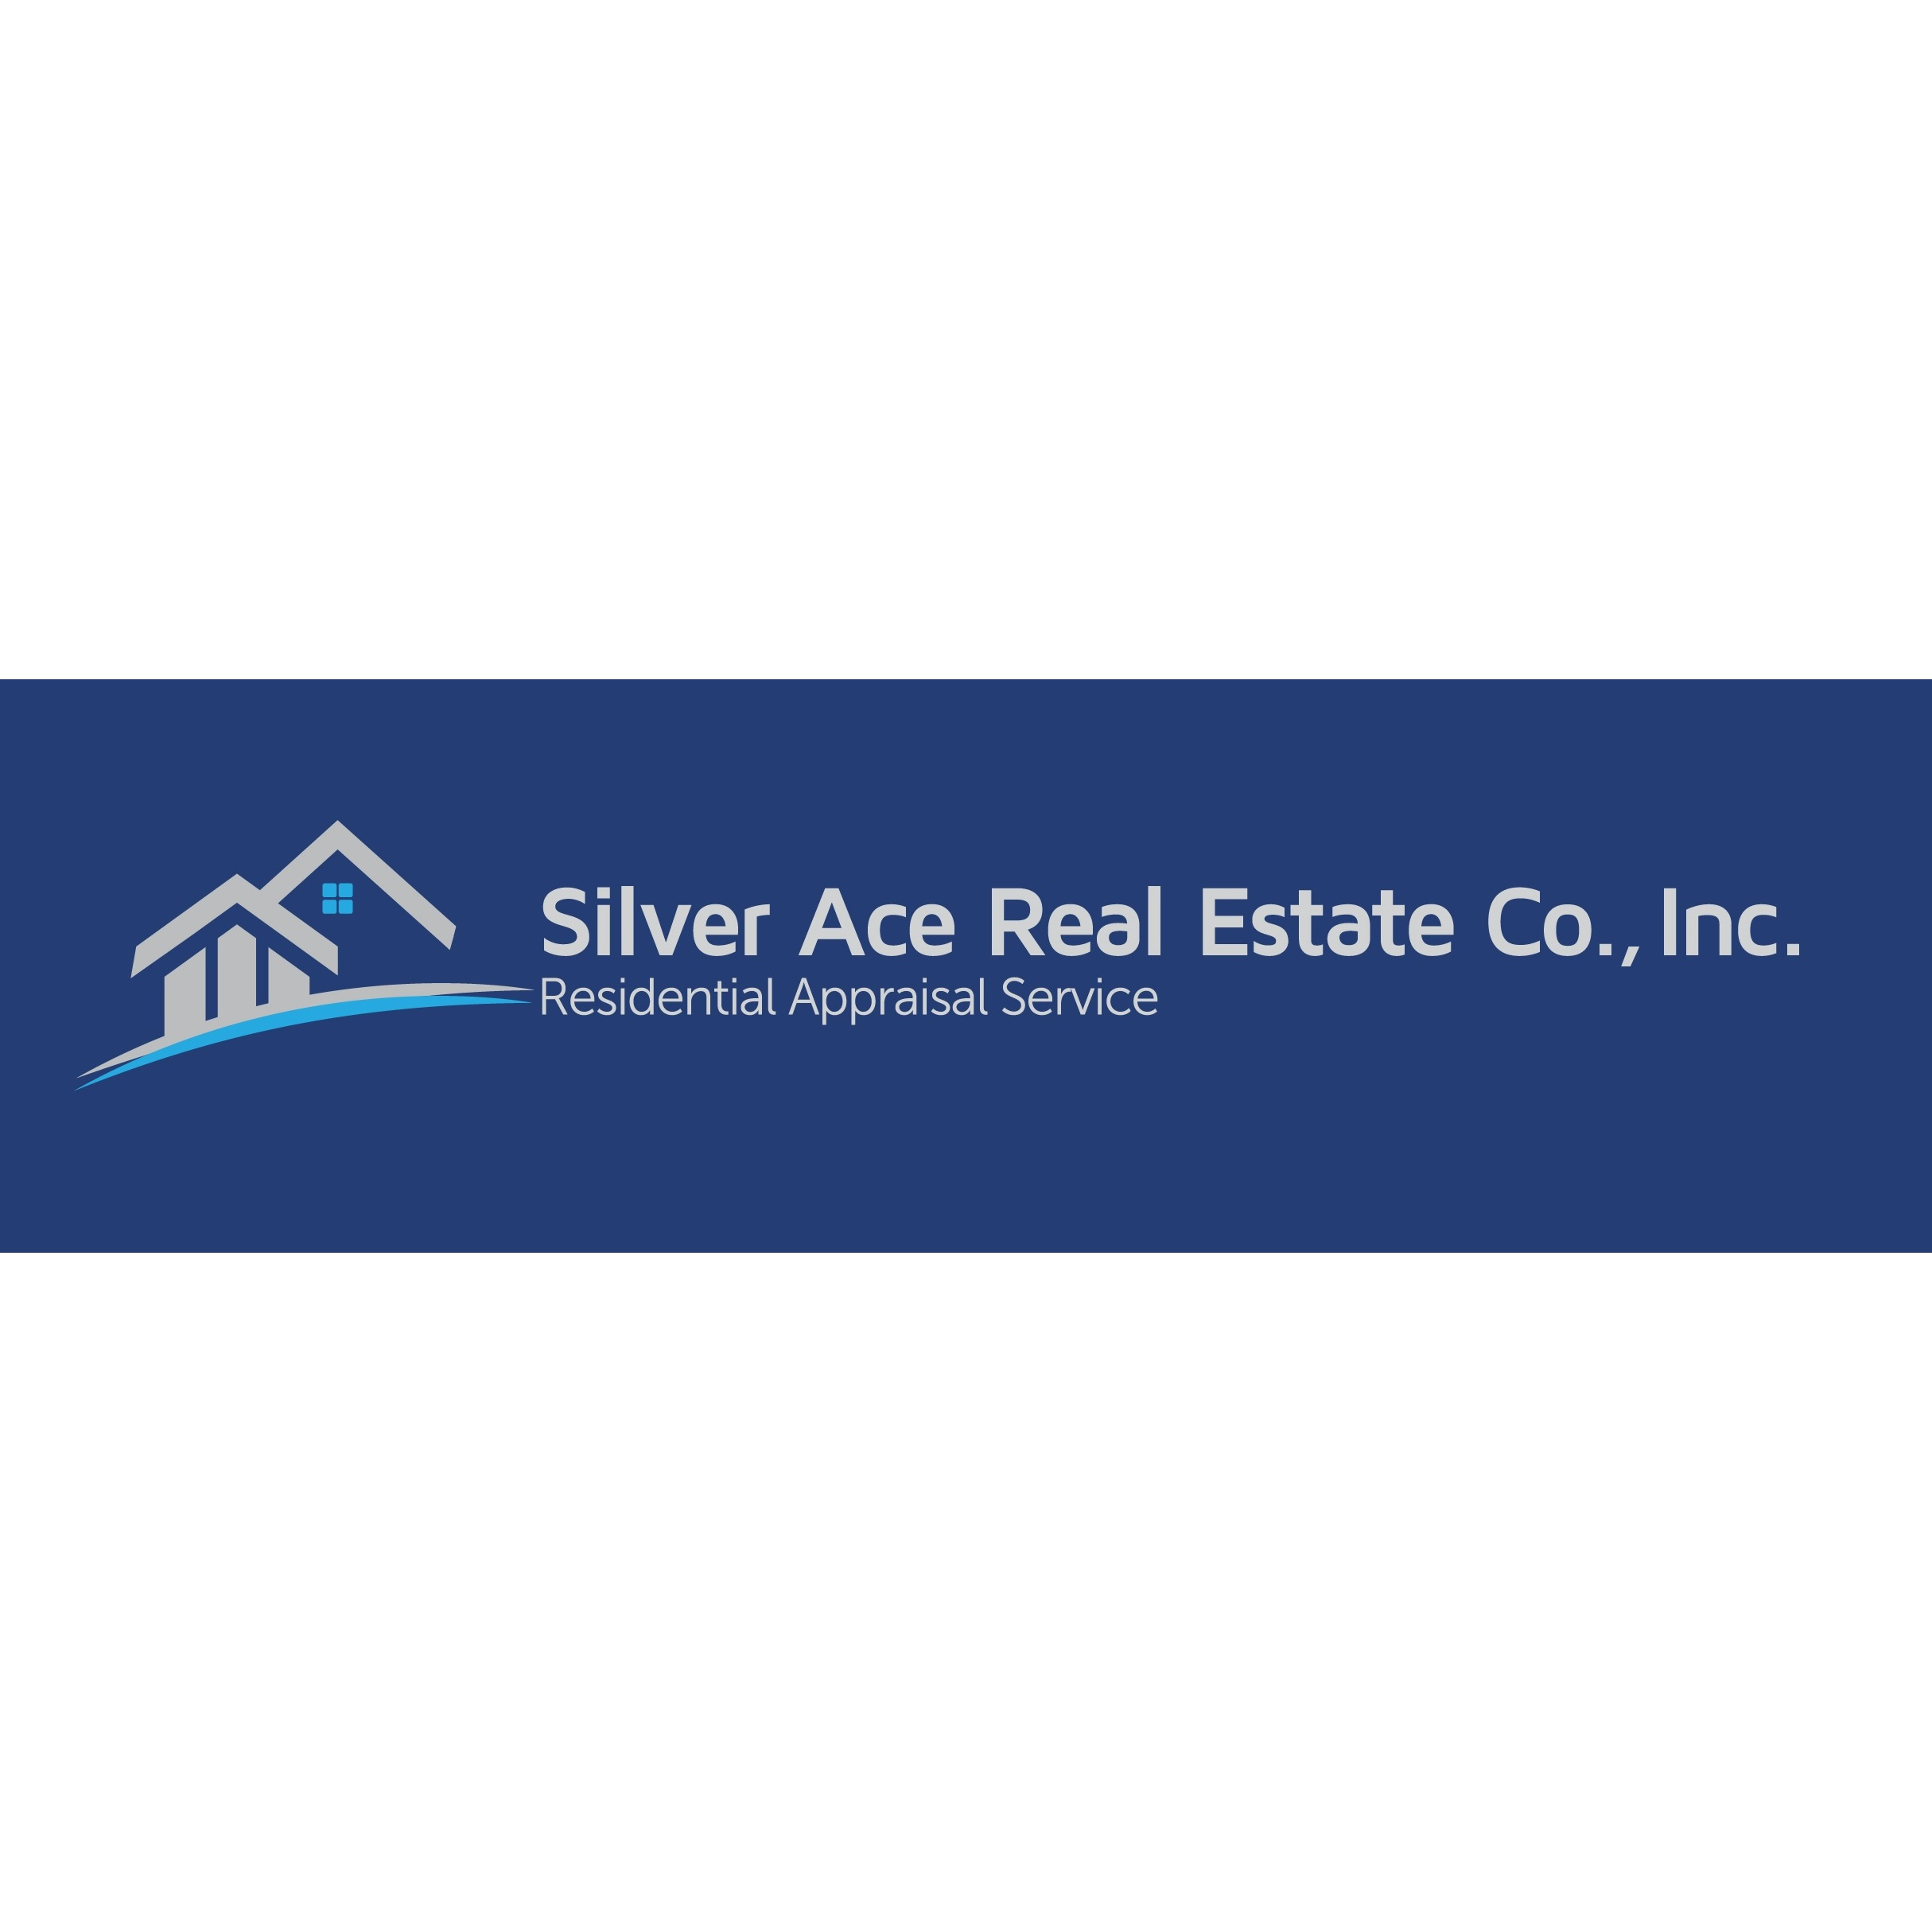 Silver Ace Real Estate Co, Inc. - Real Estate Appraisal Service